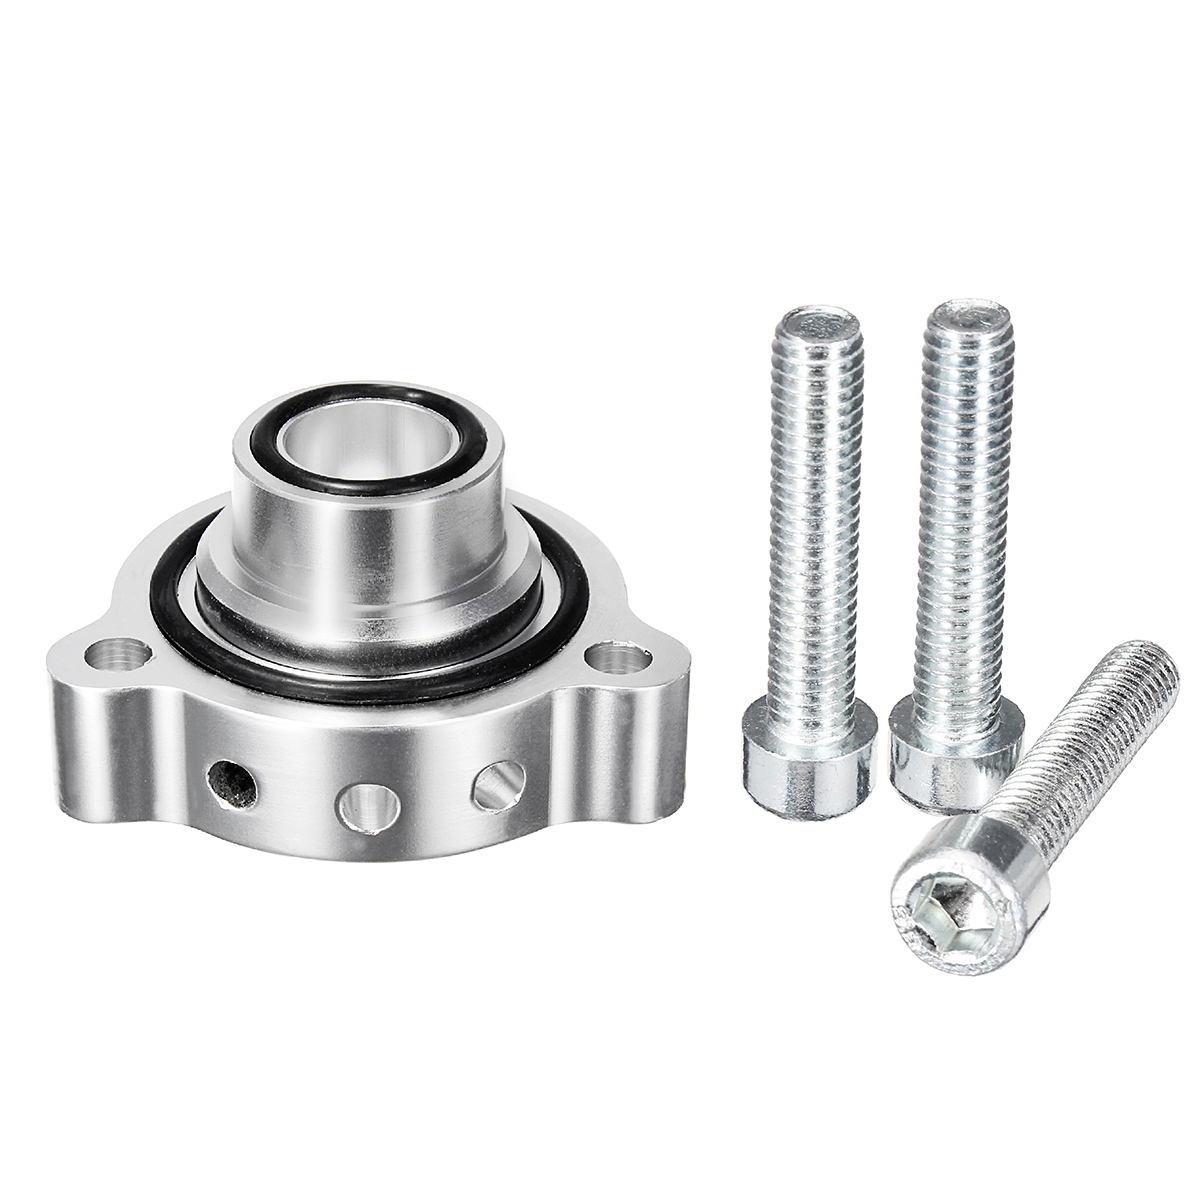 Turbocharger Turbo Blow Off Dump Valve BOV Adapter w/Bolts For BMW Mini Cooper S